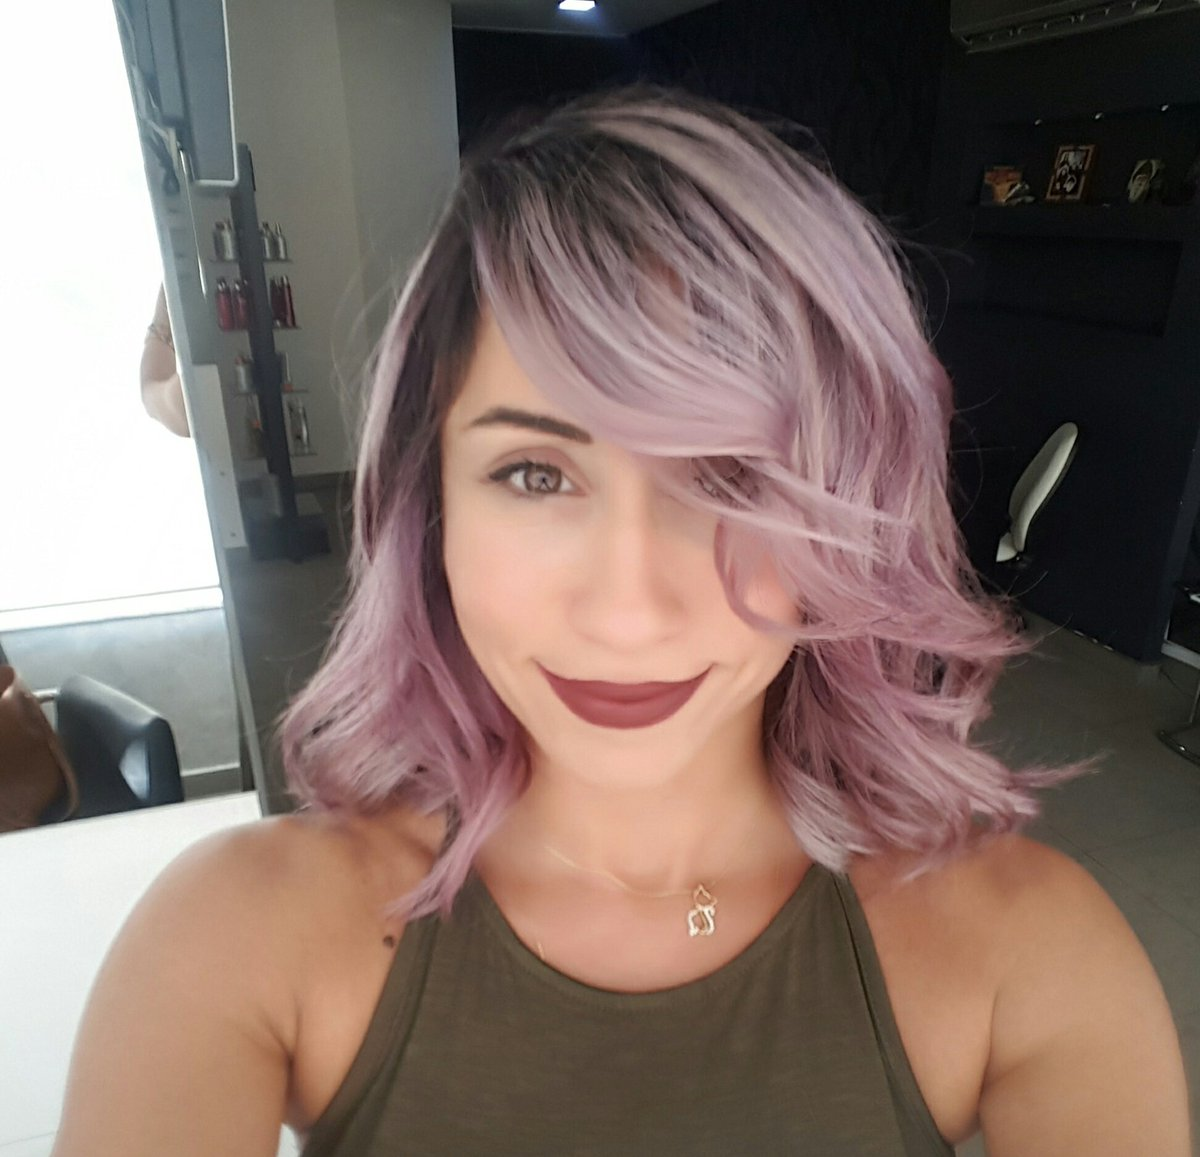 My bro is the best #hairdresser in #lebanon #newlook #haircolor #funkyhair #violet #pink #lila #coiffure #hair #hairtalk #hairstyles #best<br>http://pic.twitter.com/6caLnLf5Px